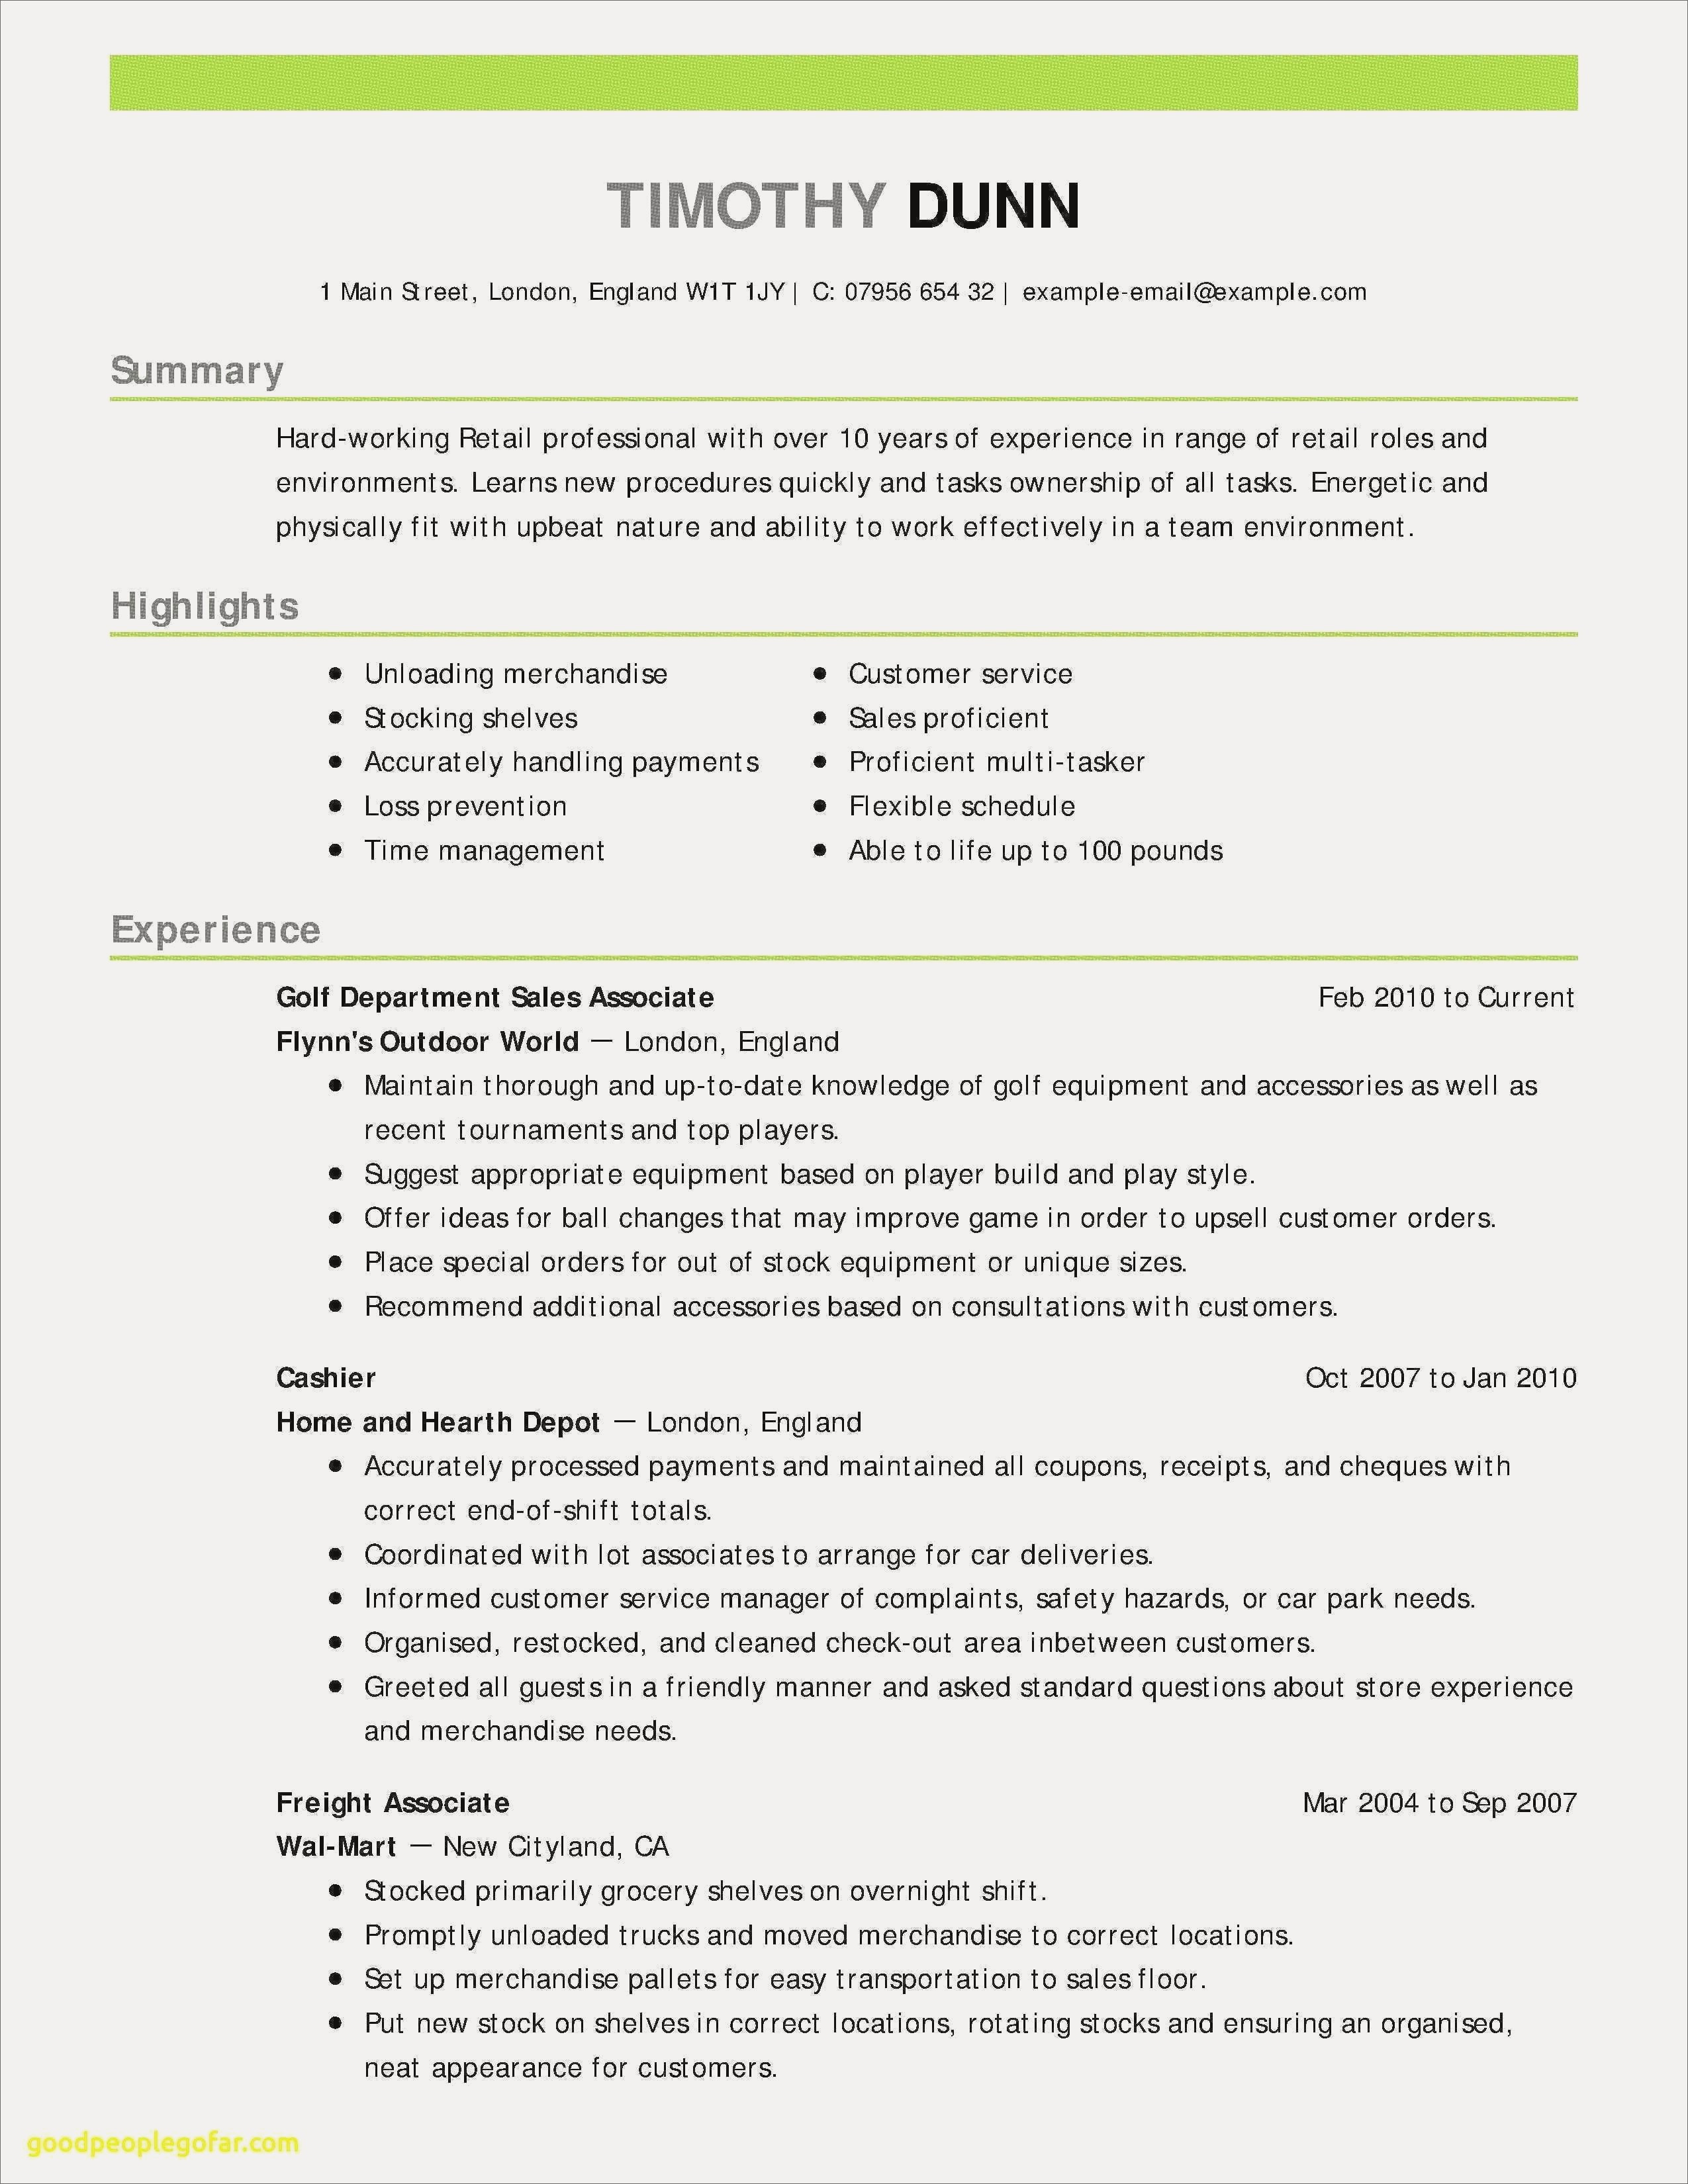 Sales Associate Resume  55 What Skills To Put On Resume For Sales Associate Wwwauto Album